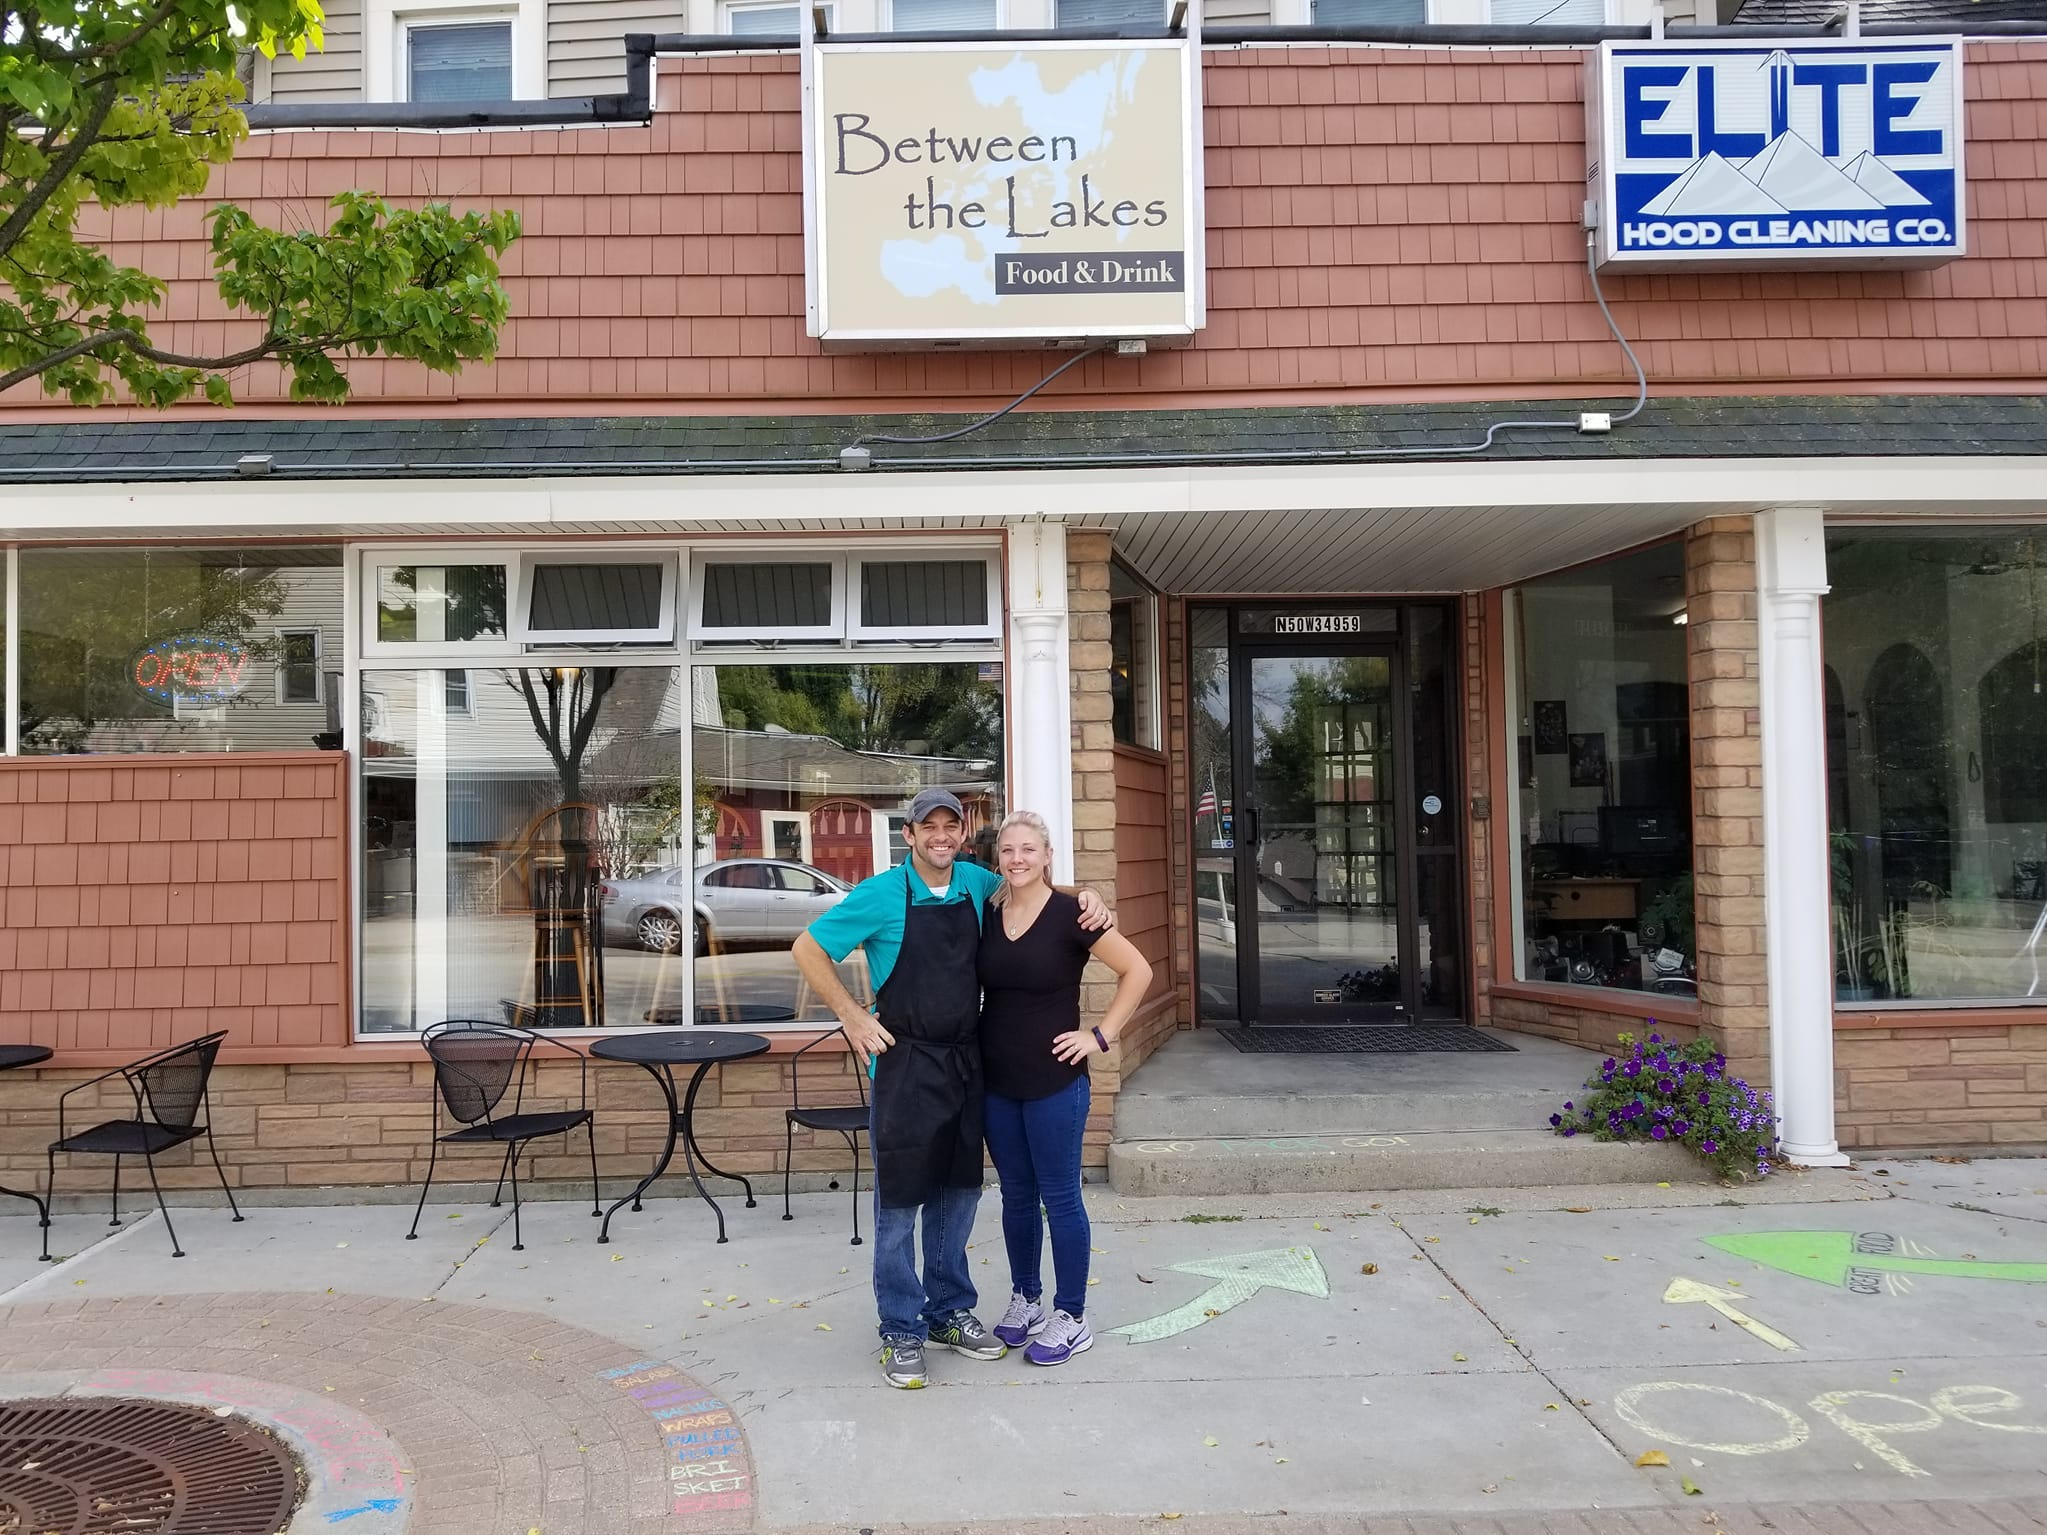 Travis and Ericka Meeks have been looking forward to opening their own restaurant for years.